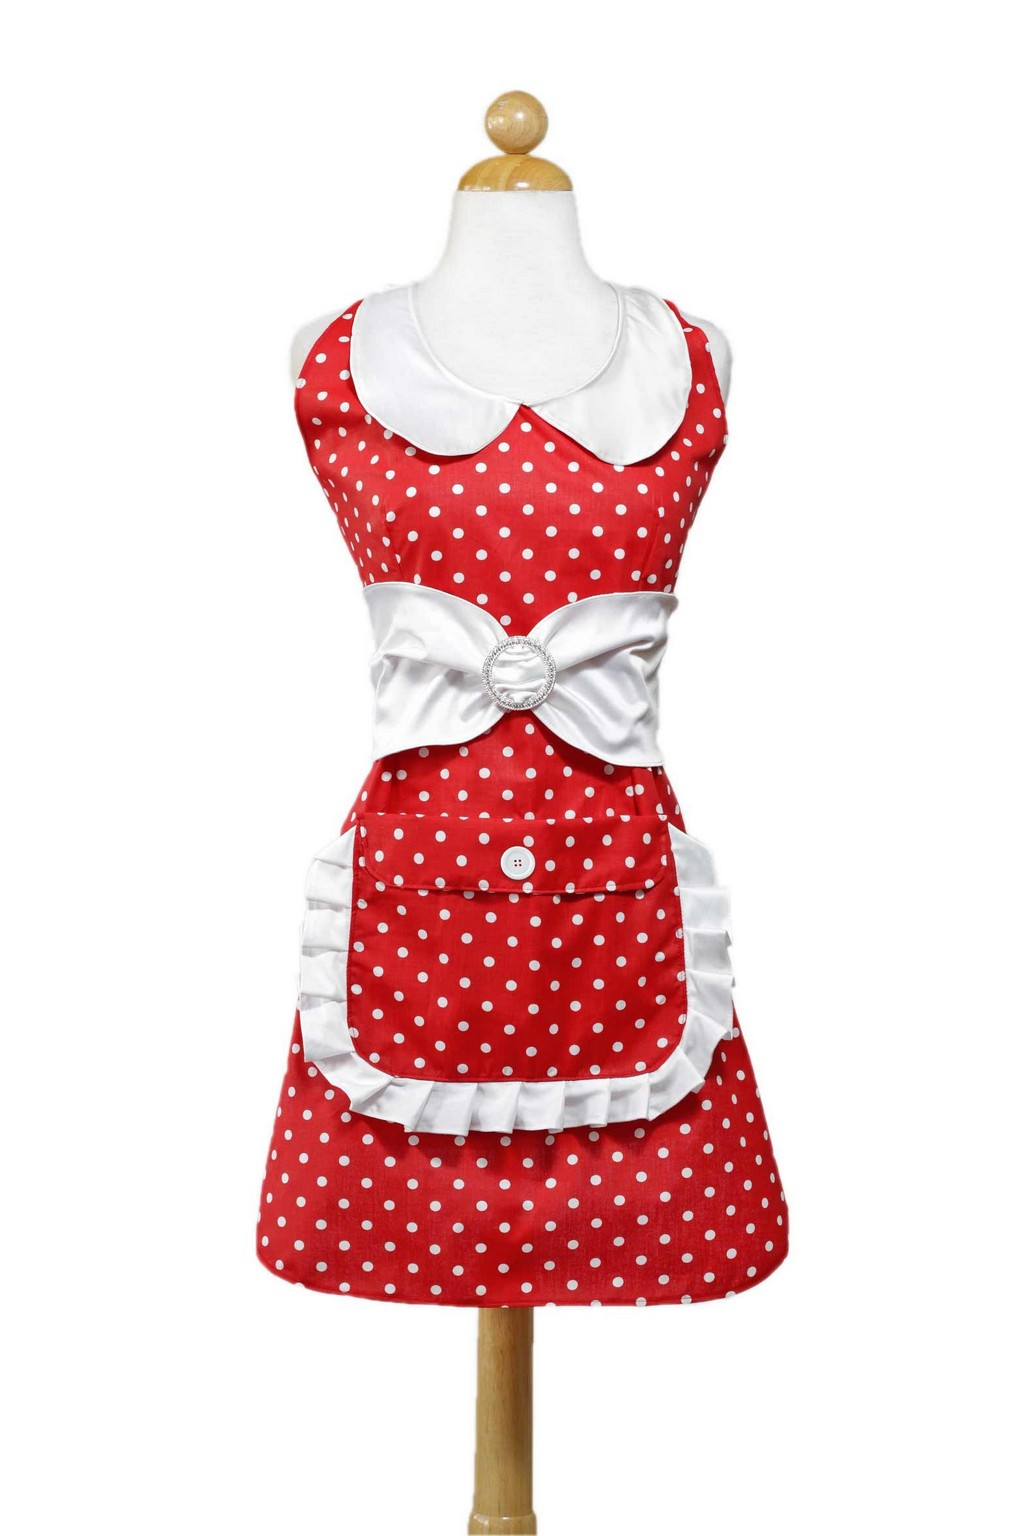 kids aprons, vintage aprons and jewelry, aprons for sale, new york city aprons